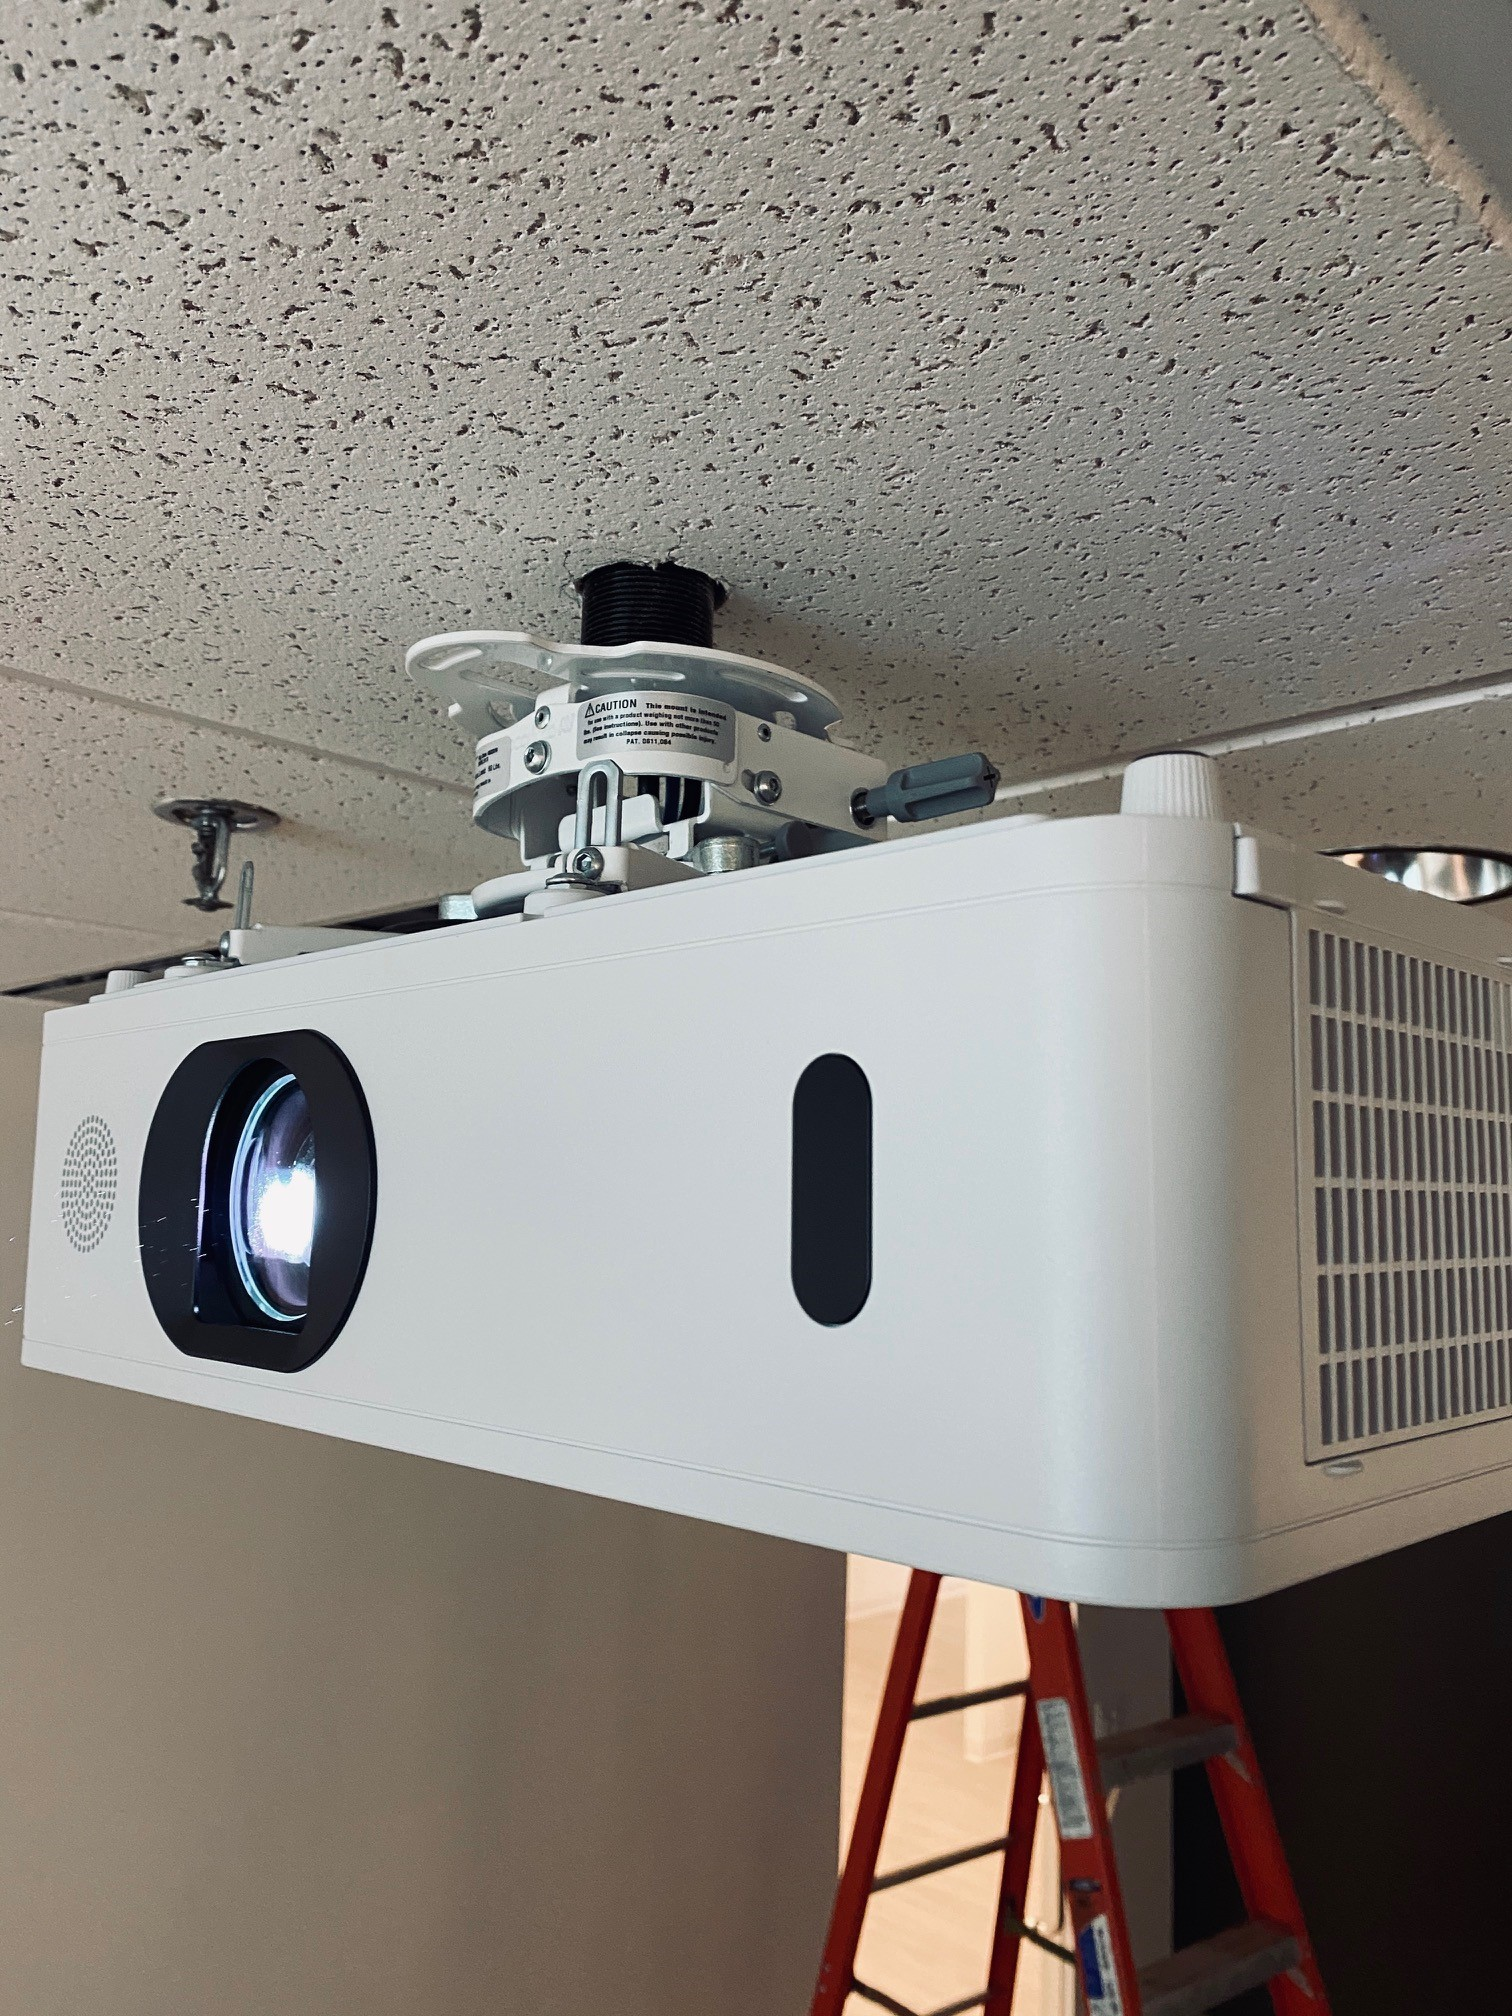 White projector on ceiling